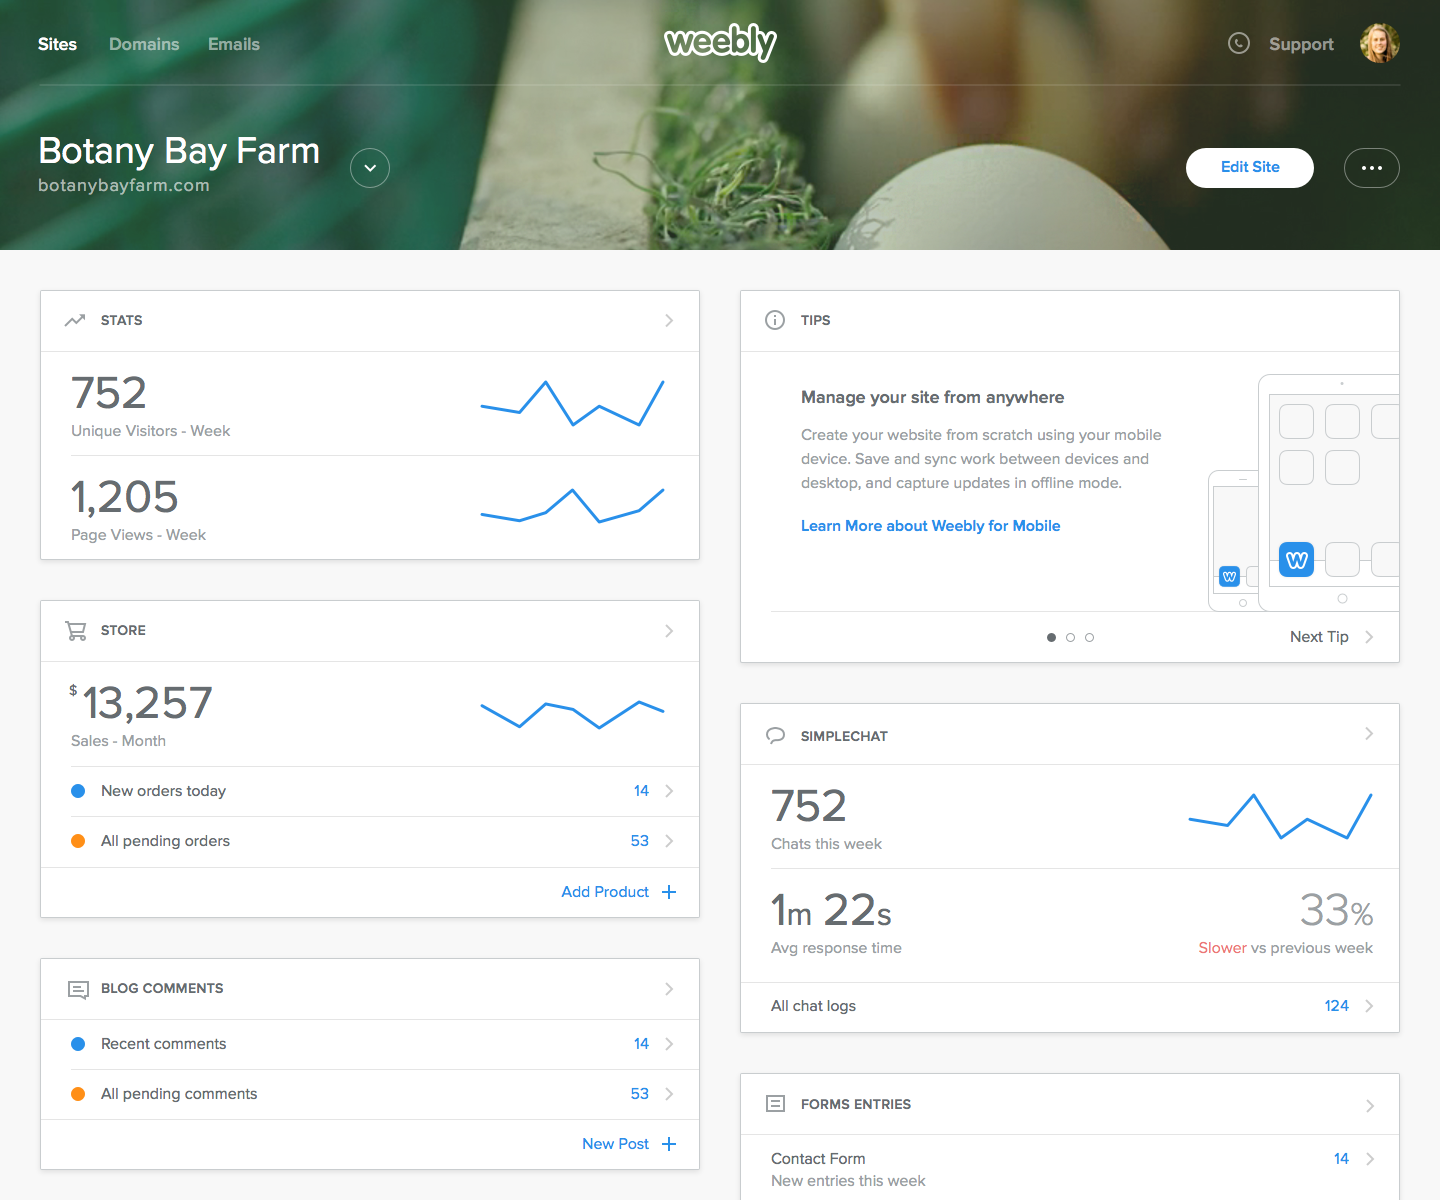 Administrative dashboard from weebly carbon